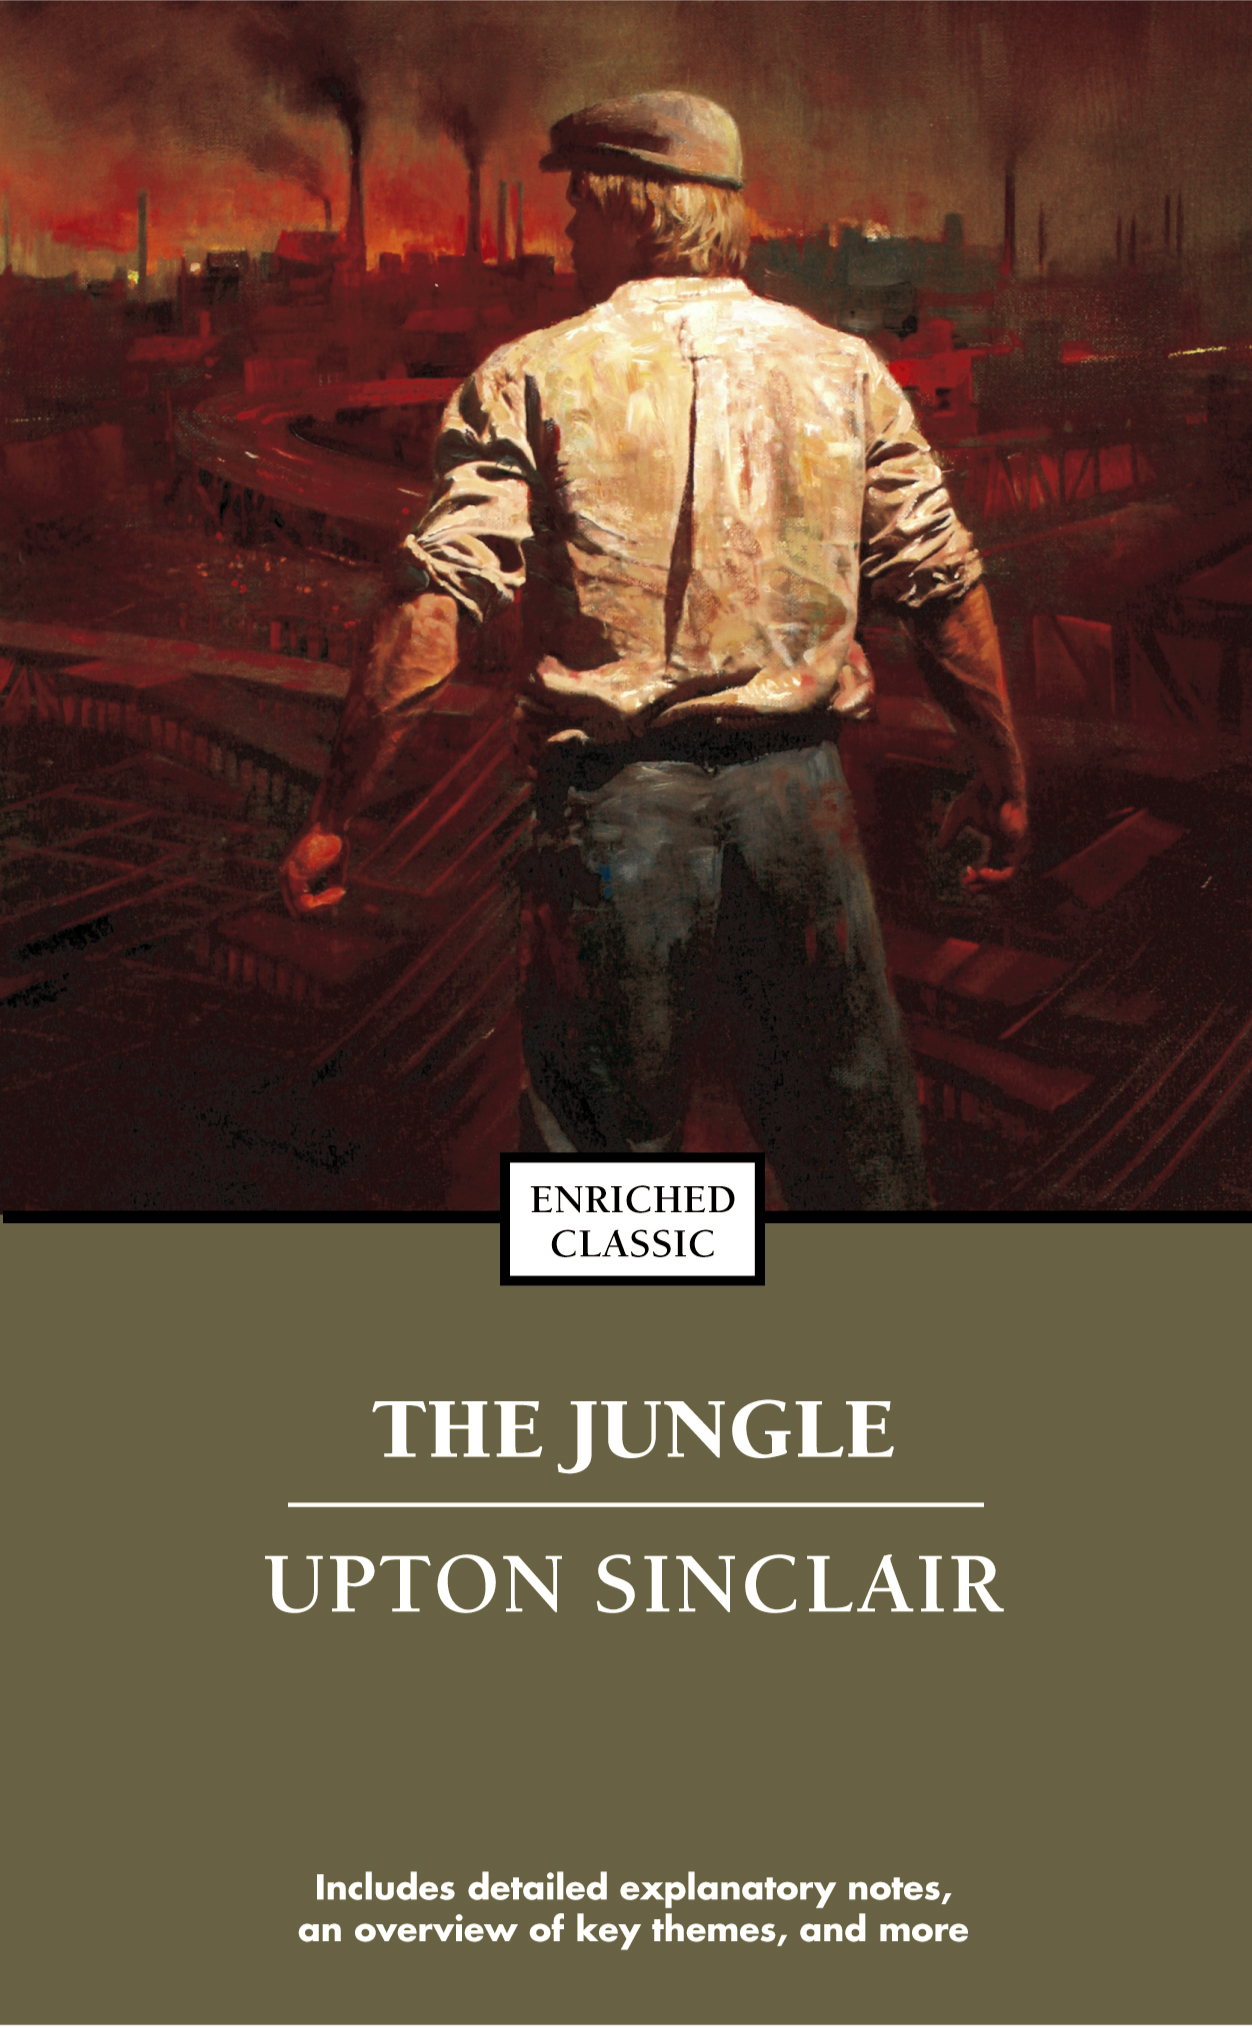 Capitalism versus socialism in the jungle by upton sinclair